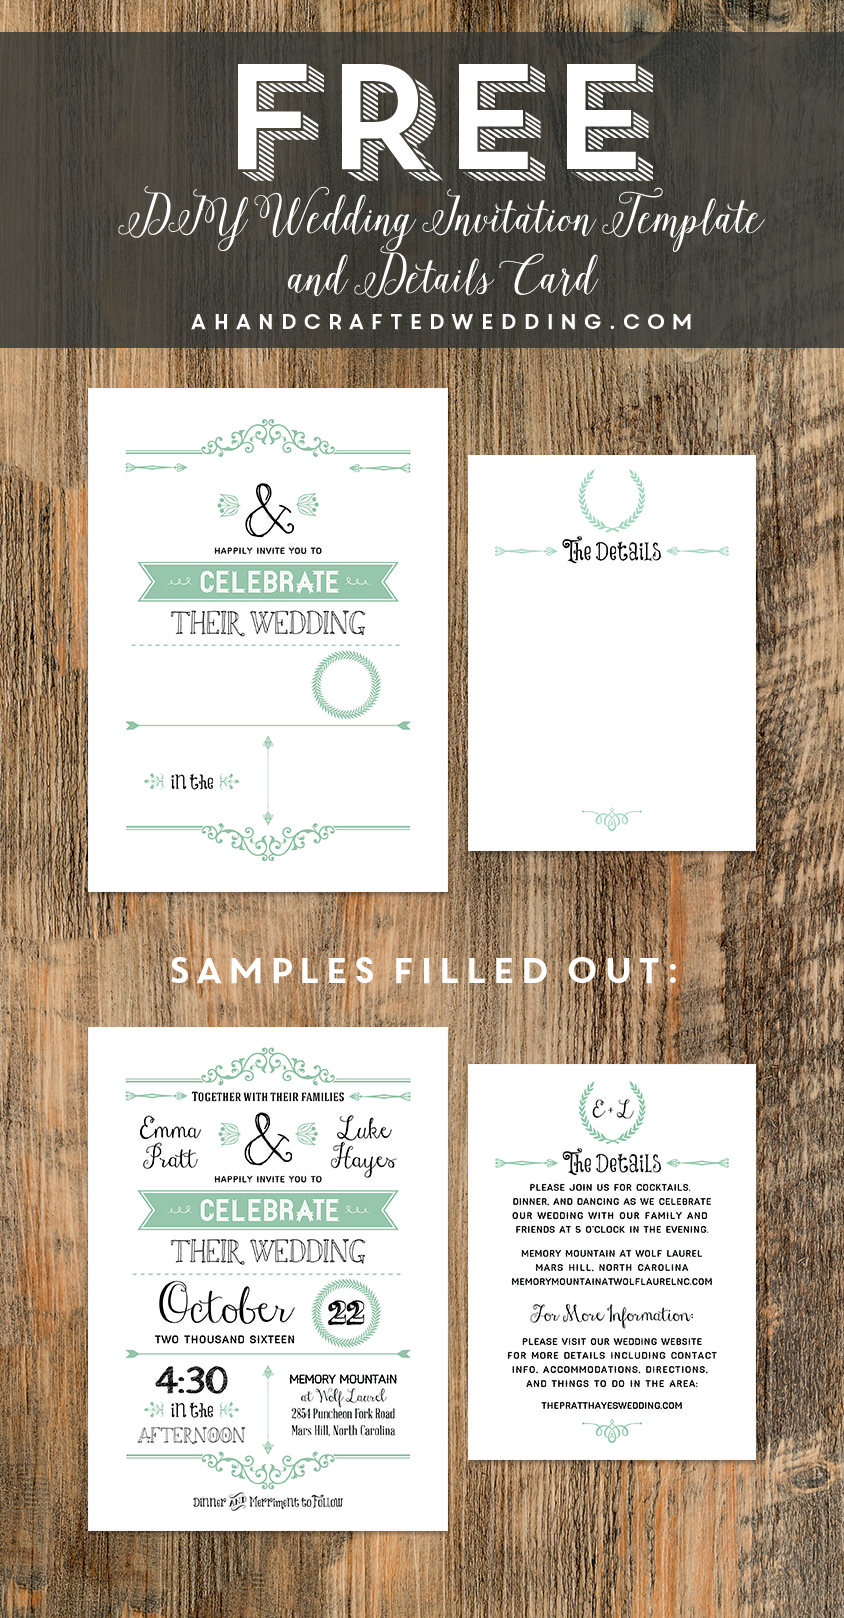 Free Printable Rustic Vintage Wedding Invitation And Details Card Templates Ahandcraftedwedding 01